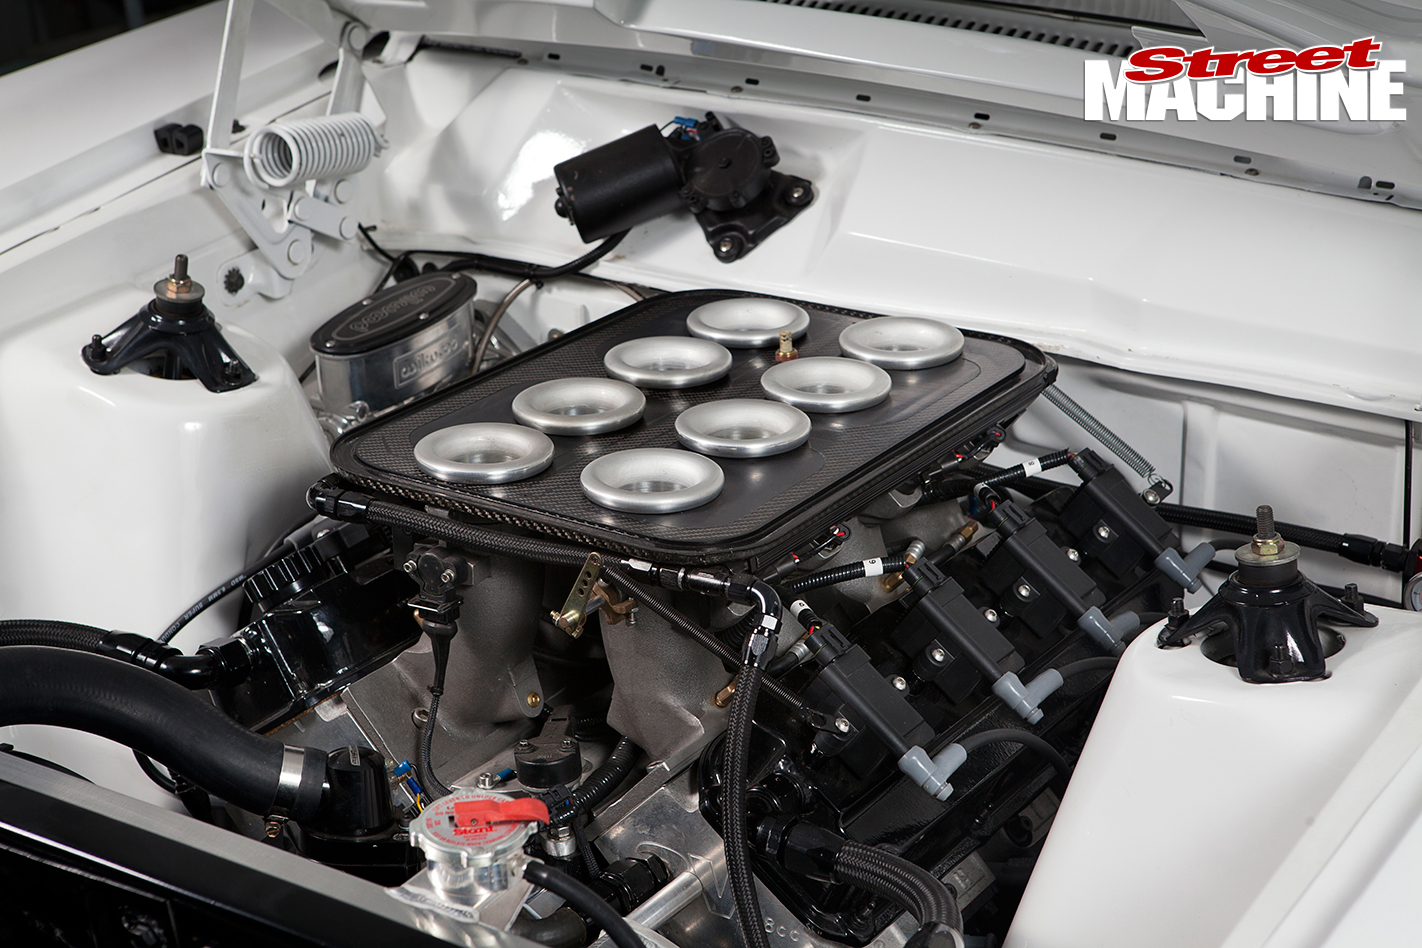 Ford -XR-Falcon -engine -detail -2